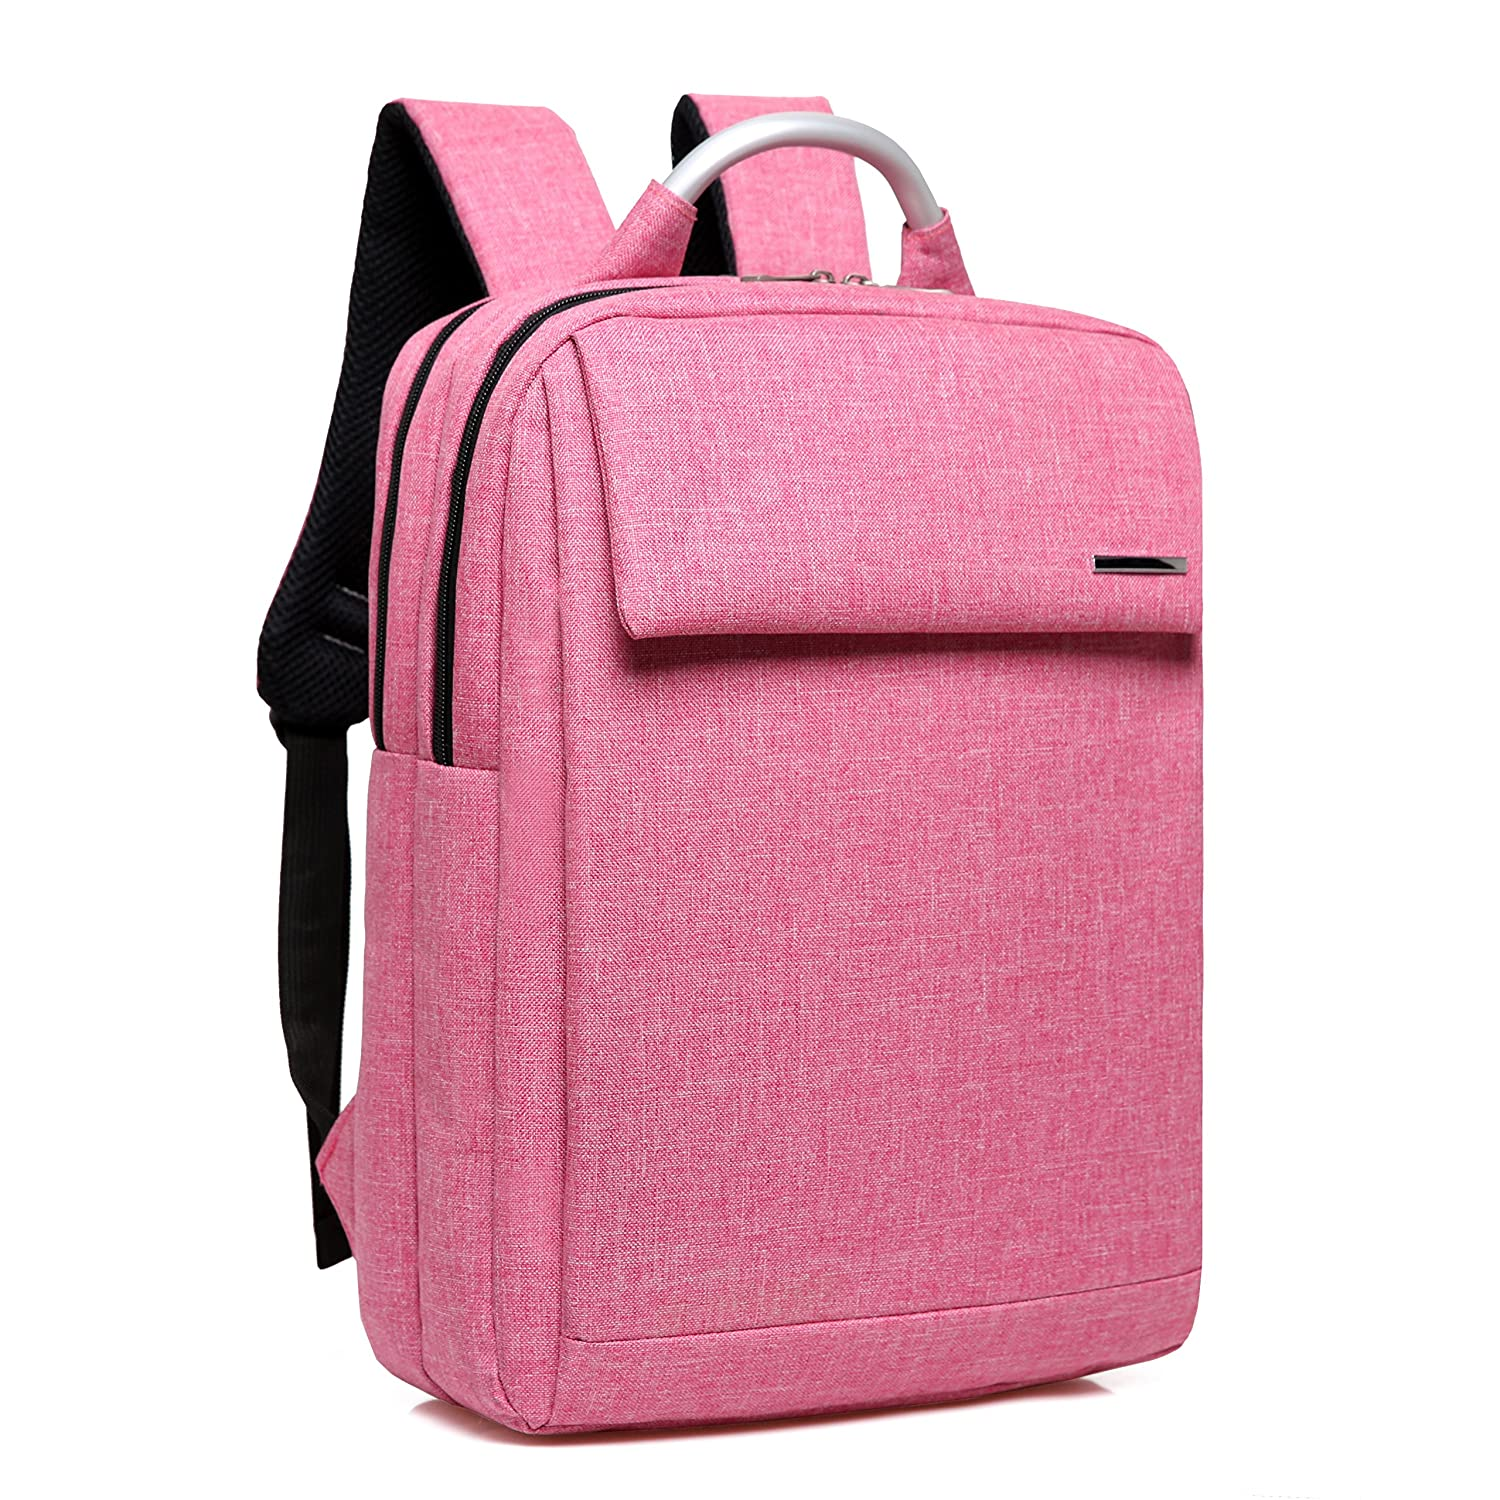 a8f9be268 Kamay's Backpack Laptop Bag School Rucksack Fashion Slim Multifunction  Professional Business Water Resistant Polyester with Luxury